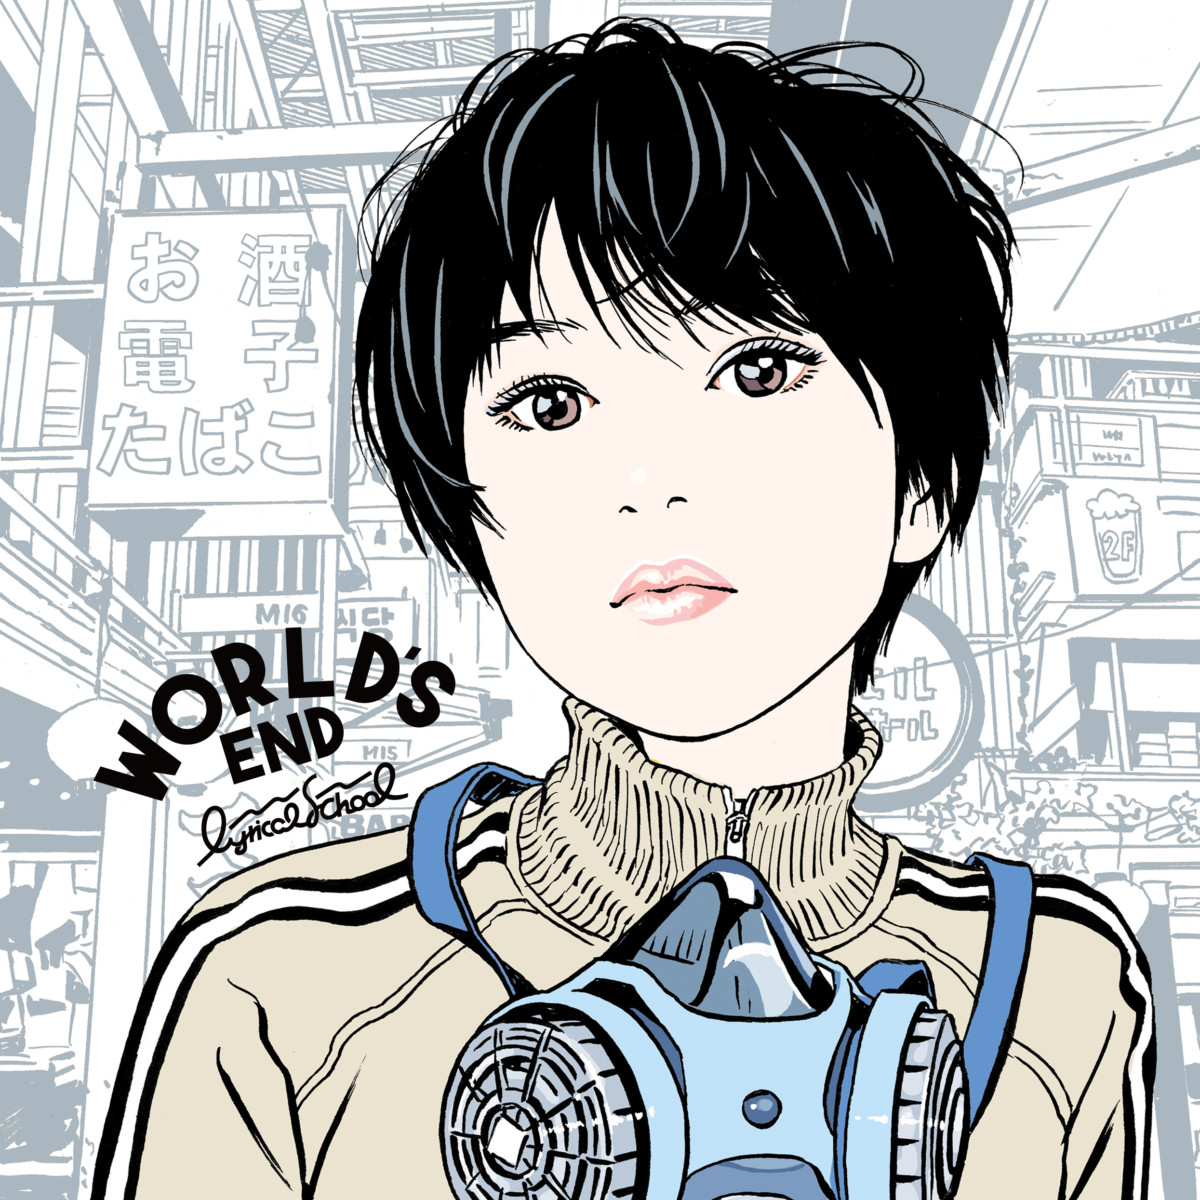 lyrical schoolアルバム「WORLD'S END」